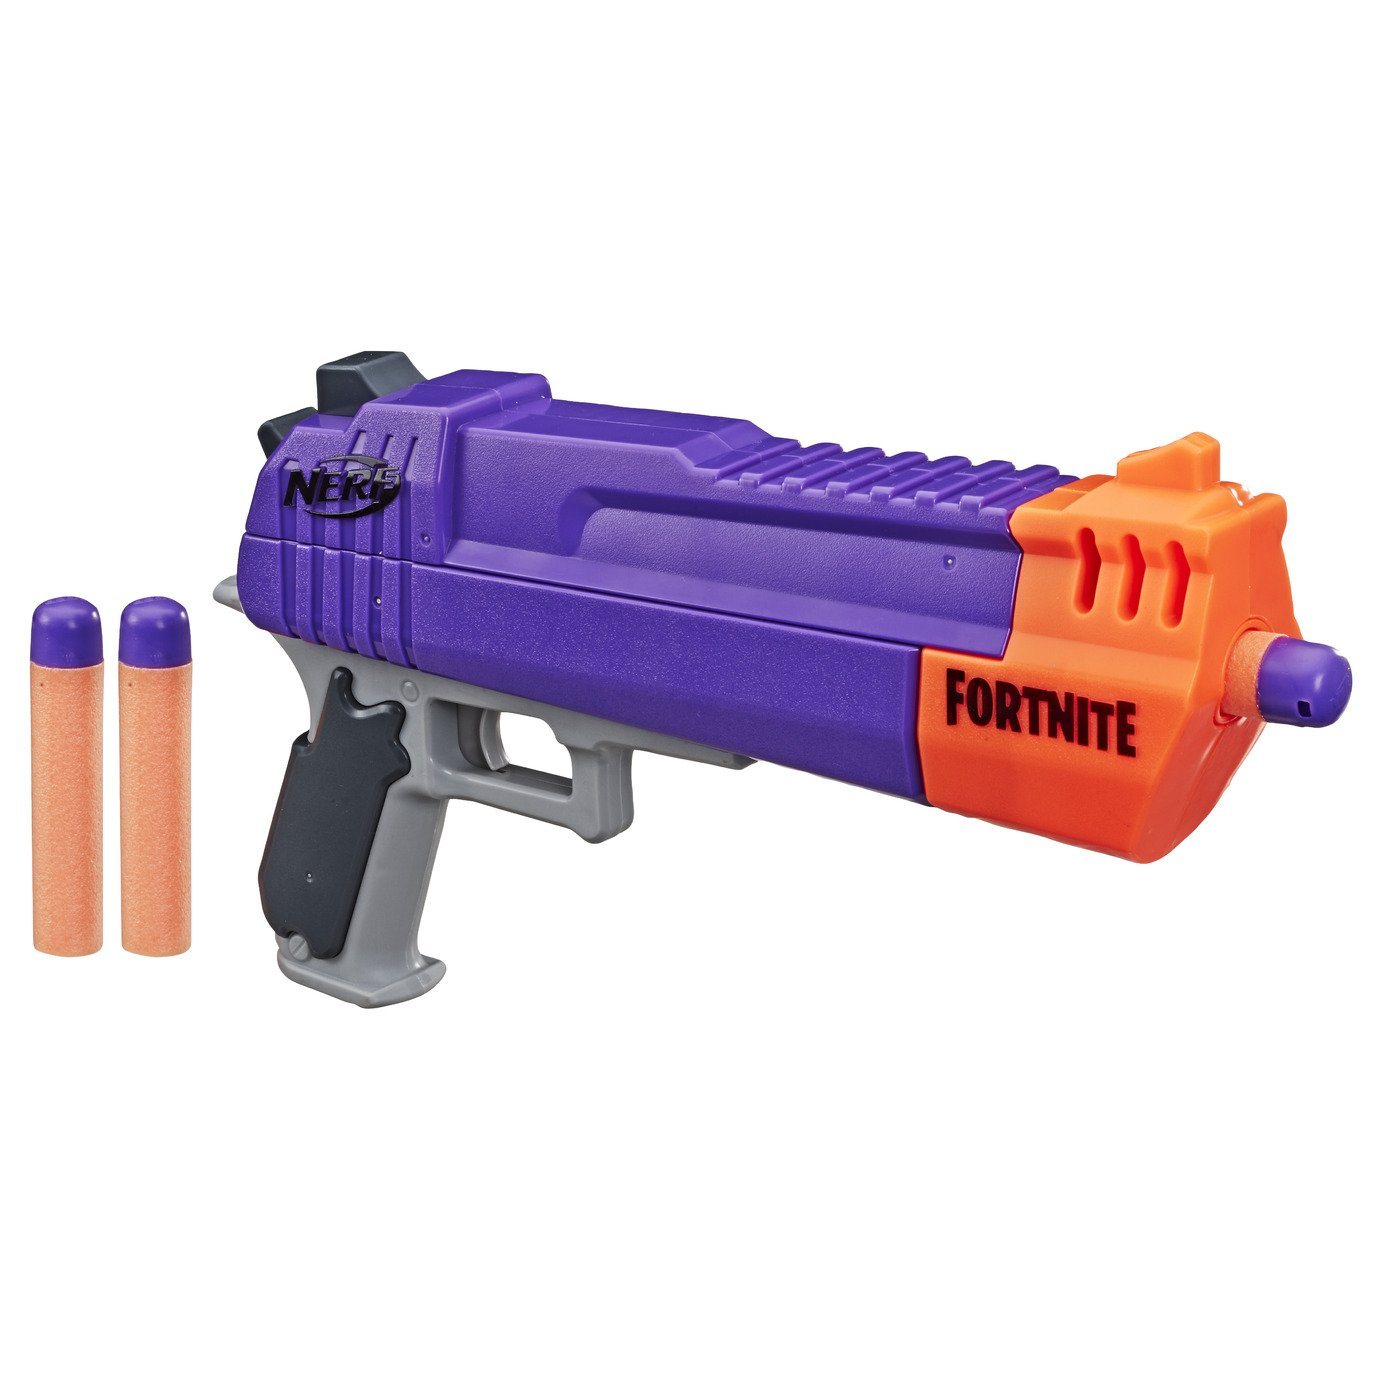 Nerf Fortnite Hand Cannon Game